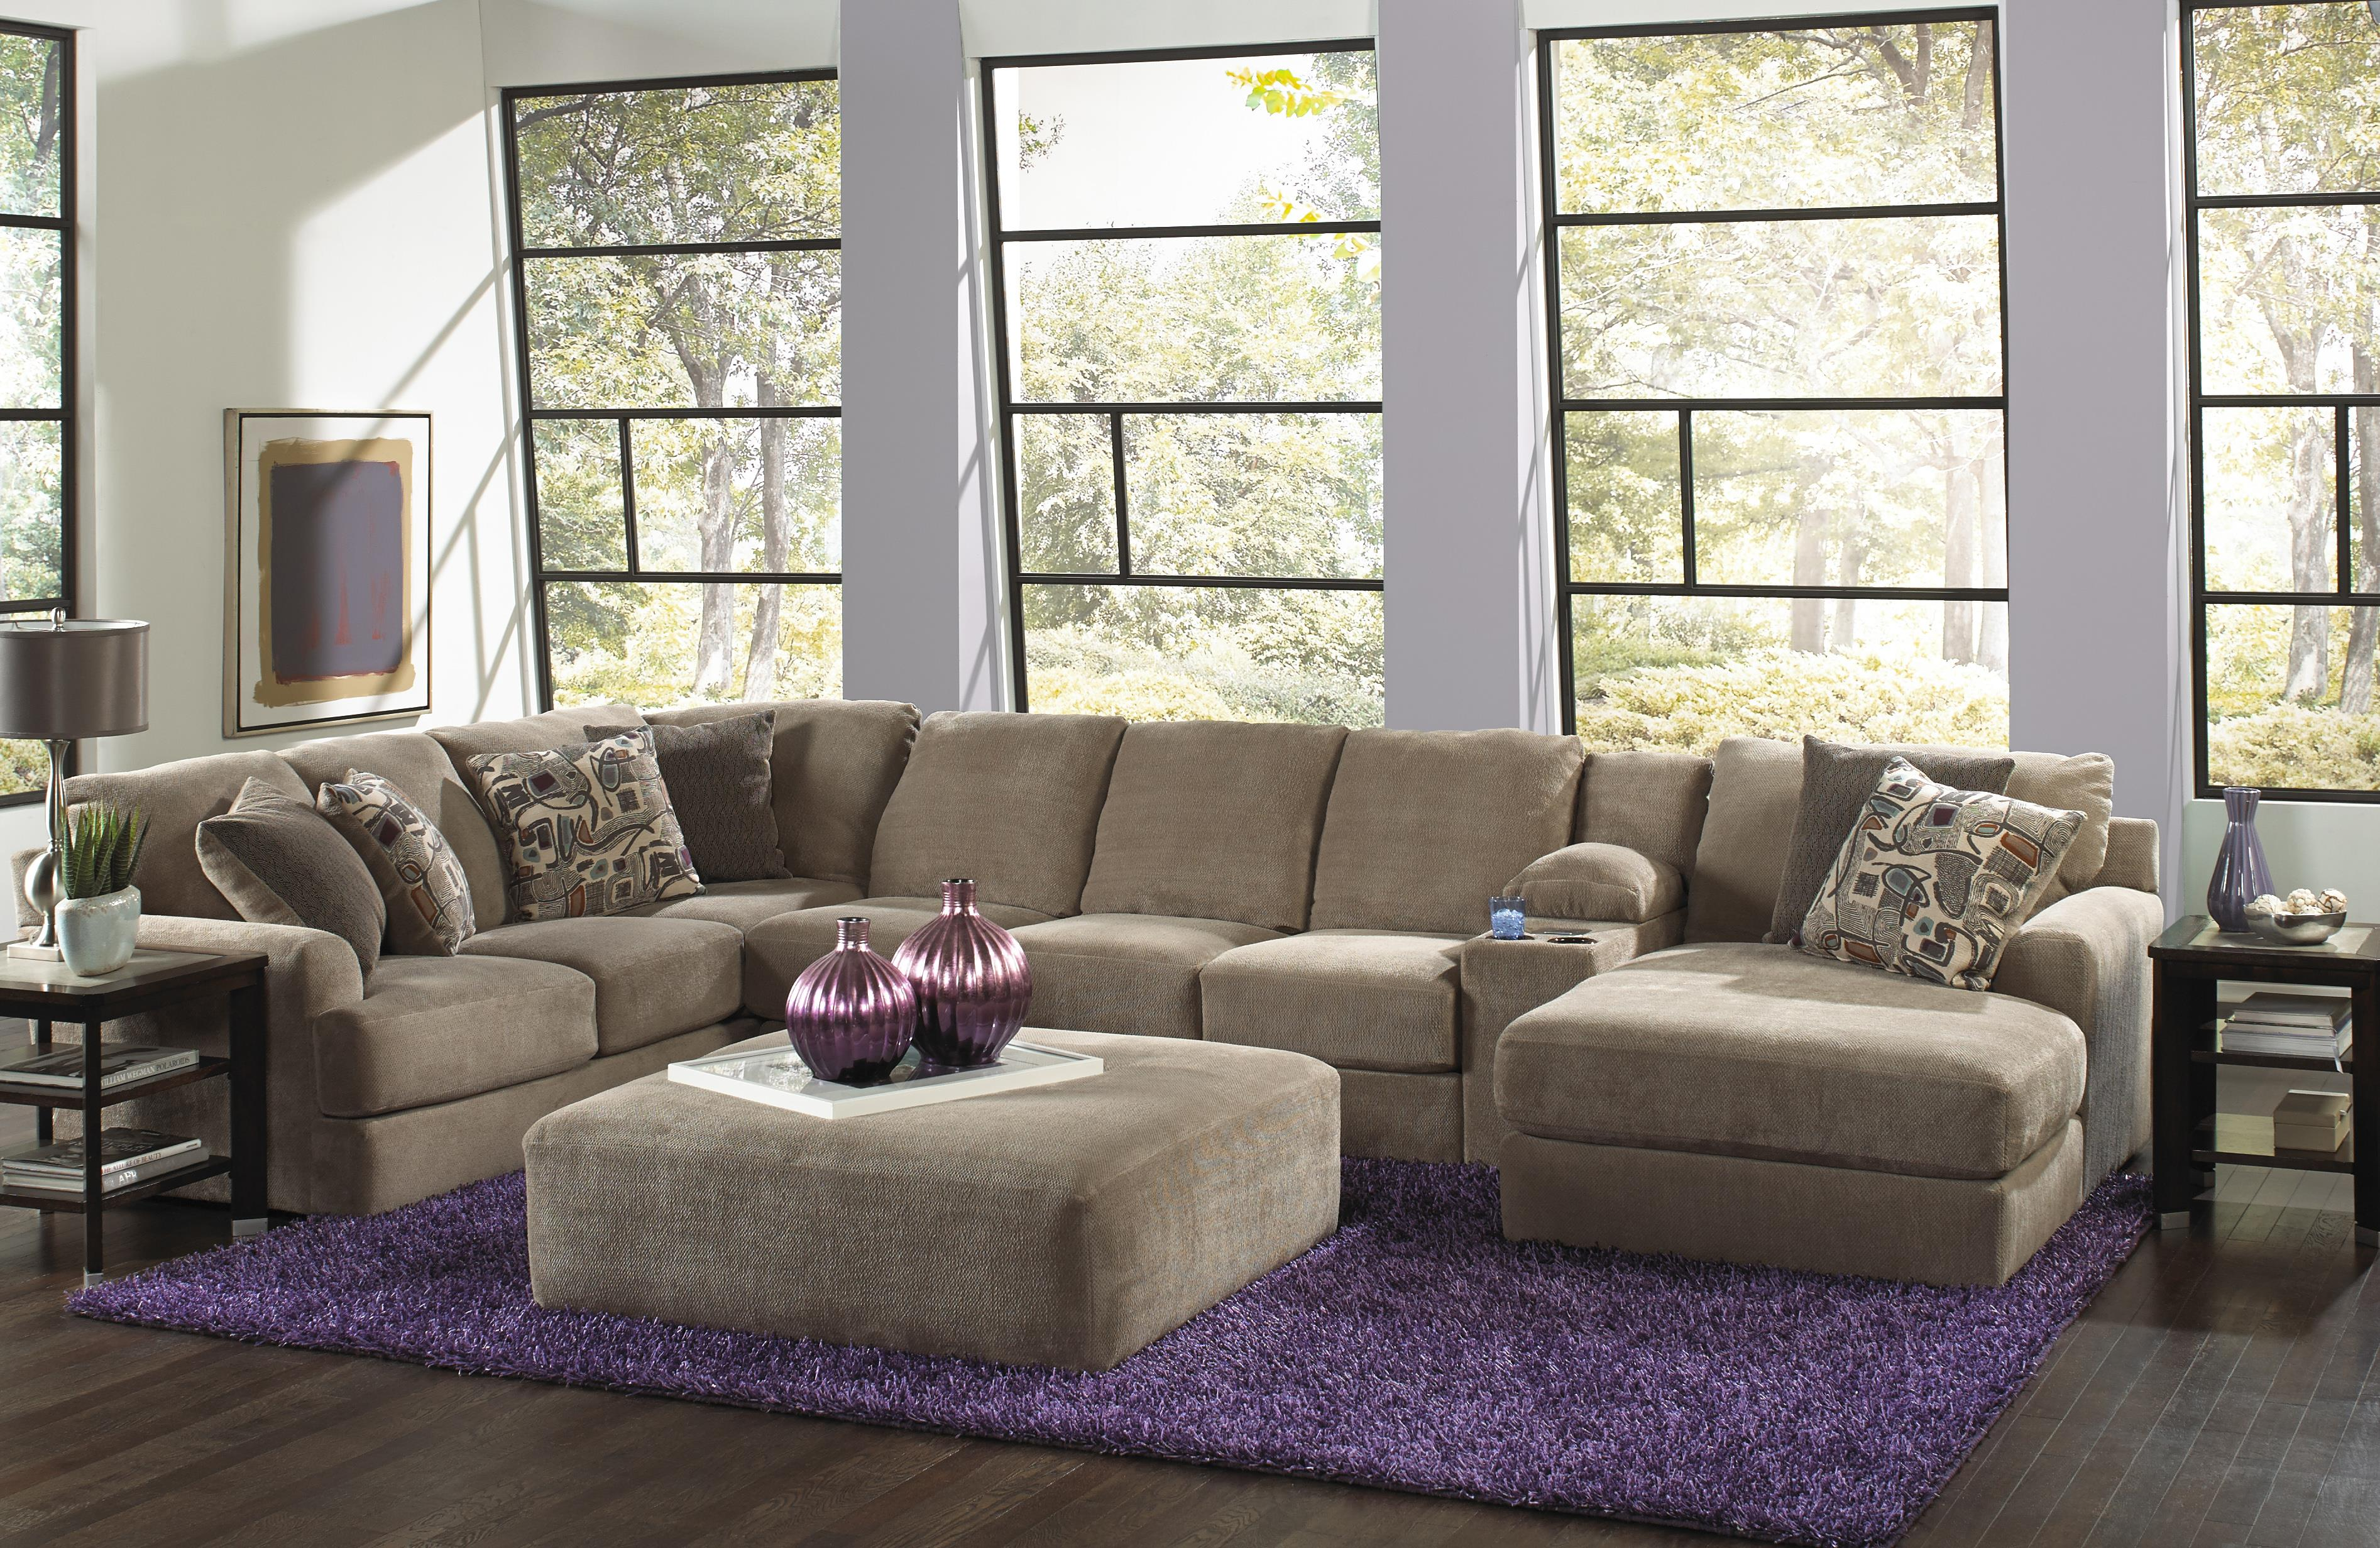 Big Sofa Sand Six Seat Sectional Sofa With Console By Jackson Furniture Wolf